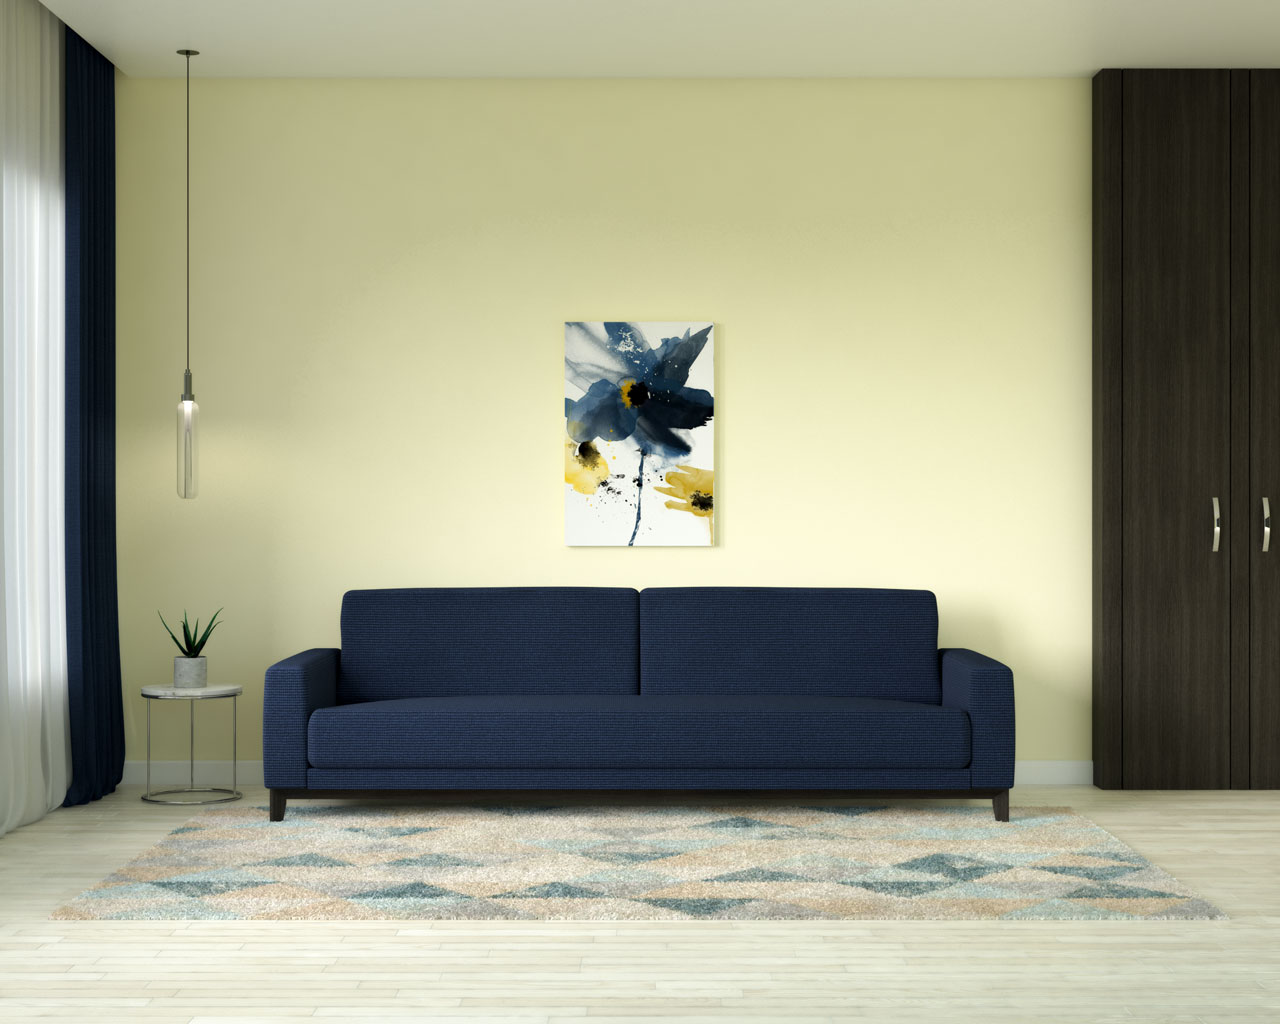 Light yellow walls with navy blue couch